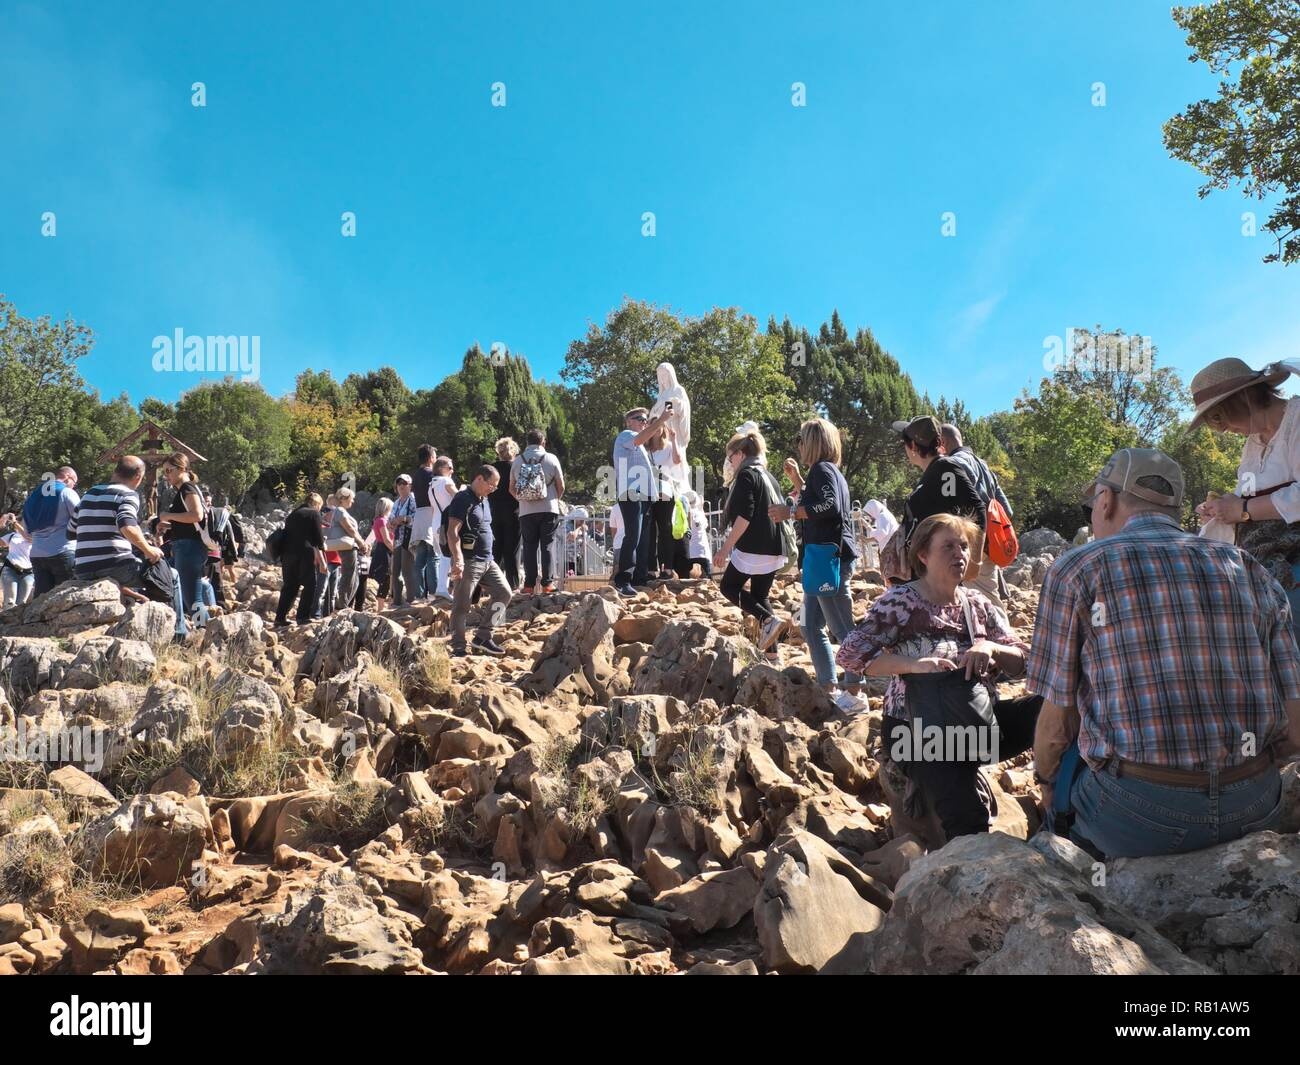 View of the Virgin Mary on Apparition Hill in Bosnia & Herzegovina  during a bright summer day showing lots of people praying - Stock Image